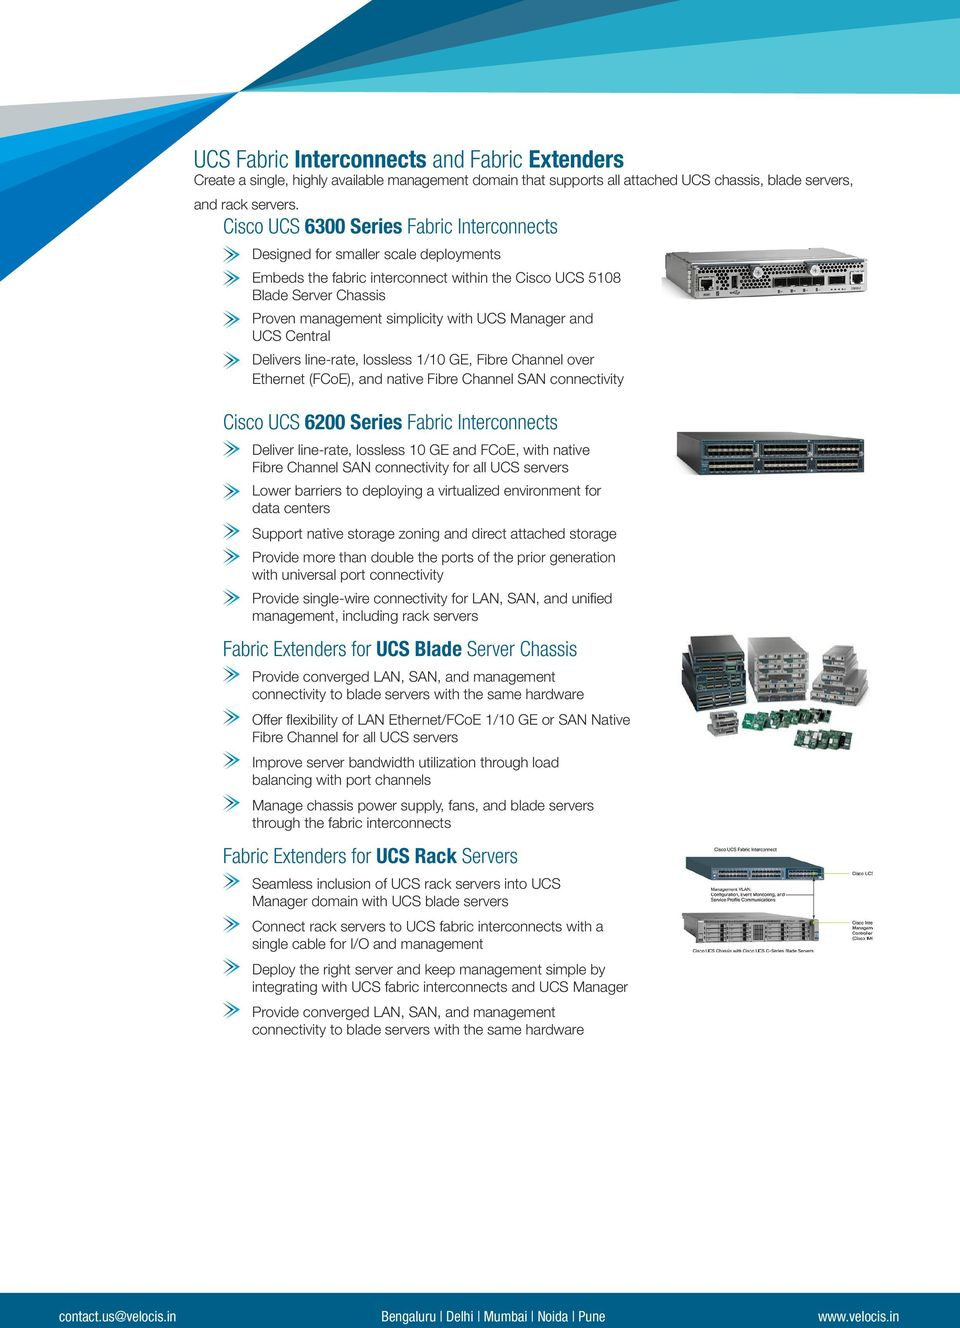 Manager and UCS Central Delivers line-rate, lossless 1/10 GE, Fibre Channel over Ethernet (FCoE), and native Fibre Channel SAN connectivity Cisco UCS 6200 Series Fabric Interconnects Deliver